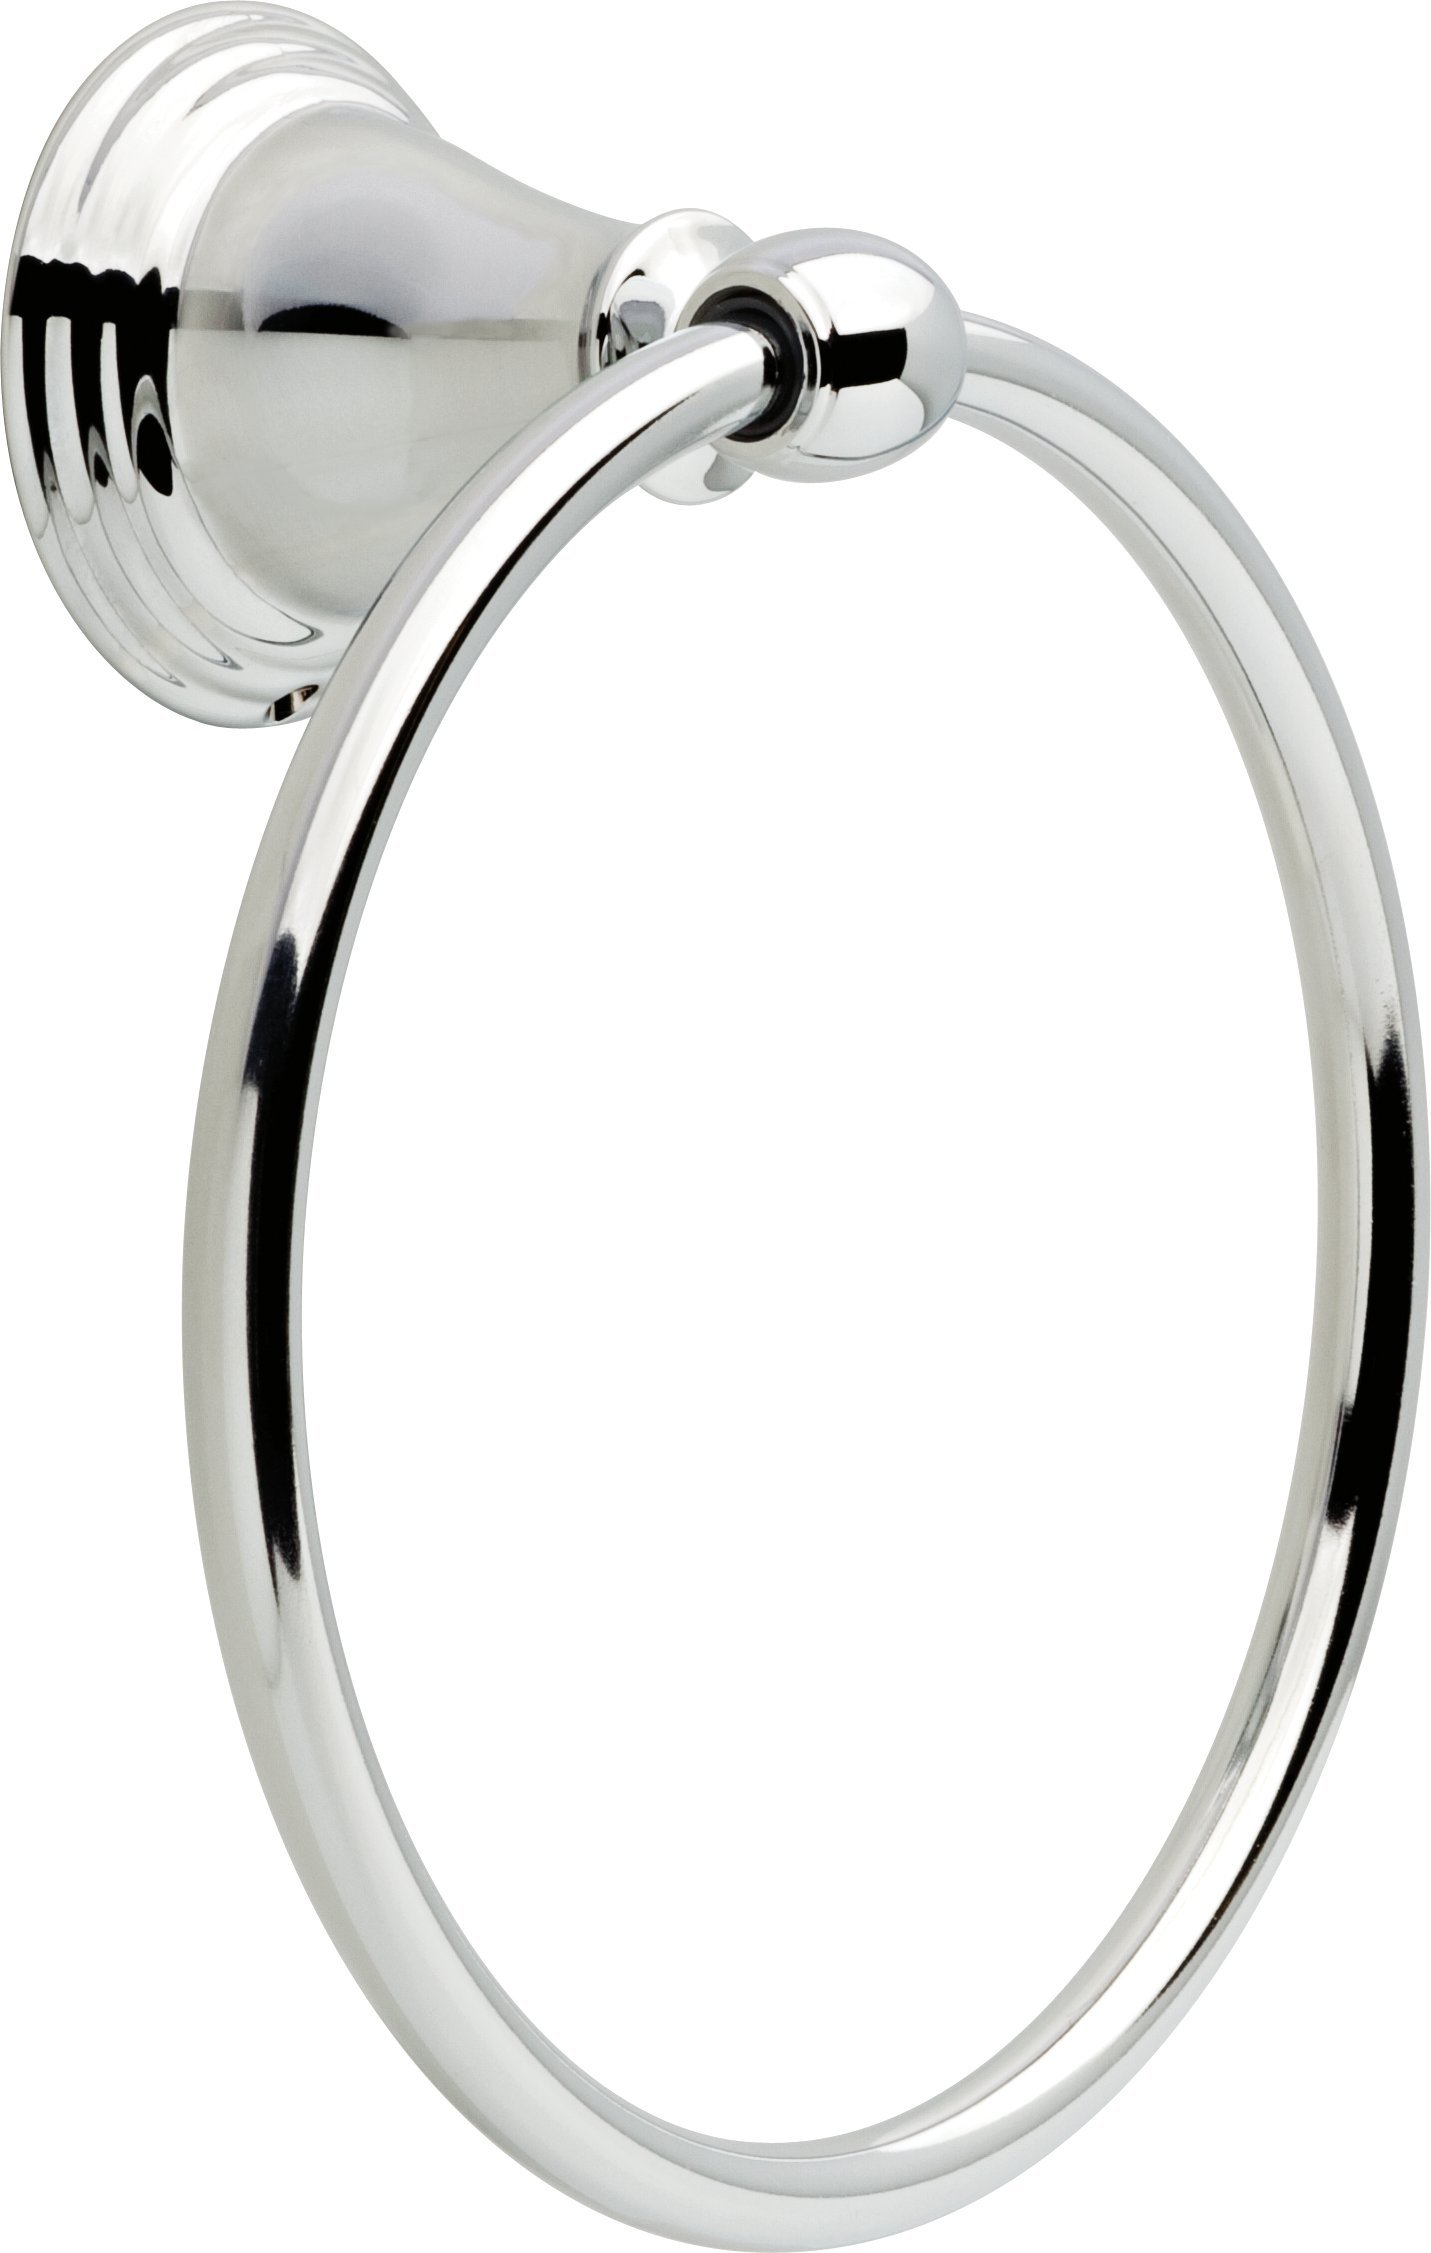 Delta Faucet 70046 Windemere Towel Ring, Polished Chrome